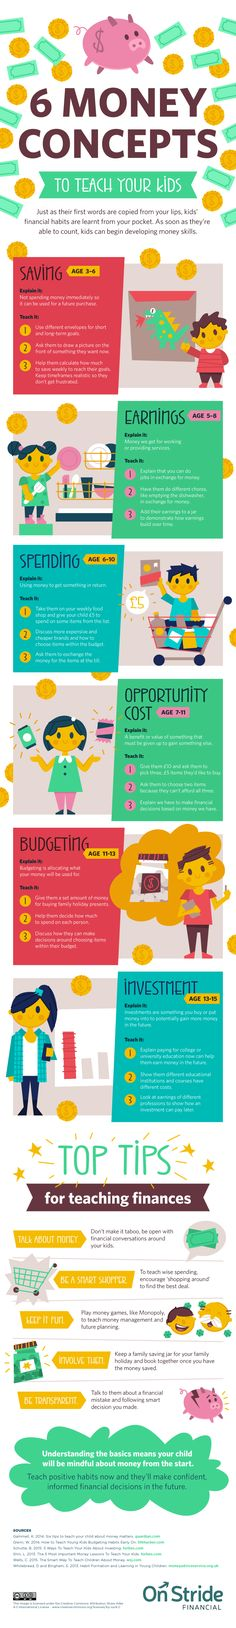 Check it out below for ideas on when and how to teach your kids about money — no matter how old they are. #parentingtipsforboys